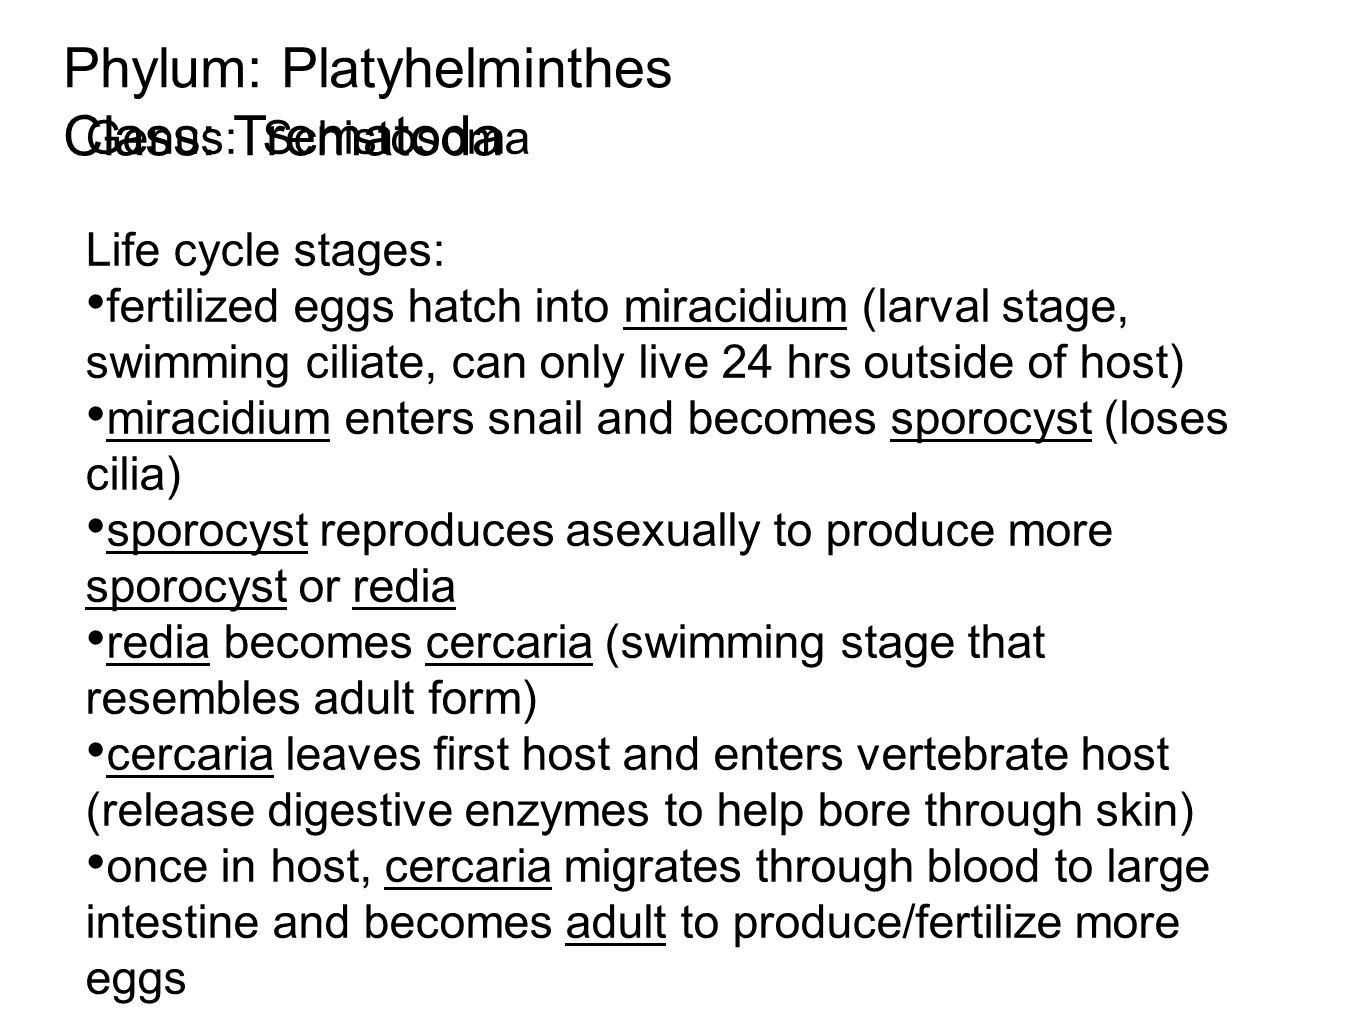 Phylum: Platyhelminthes Class: Trematoda Genus: Schistosoma Life cycle stages: fertilized eggs hatch into miracidium (larval stage, swimming ciliate, can only live 24 hrs outside of host) miracidium enters snail and becomes sporocyst (loses cilia) sporocyst reproduces asexually to produce more sporocyst or redia redia becomes cercaria (swimming stage that resembles adult form) cercaria leaves first host and enters vertebrate host (release digestive enzymes to help bore through skin) once in host, cercaria migrates through blood to large intestine and becomes adult to produce/fertilize more eggs